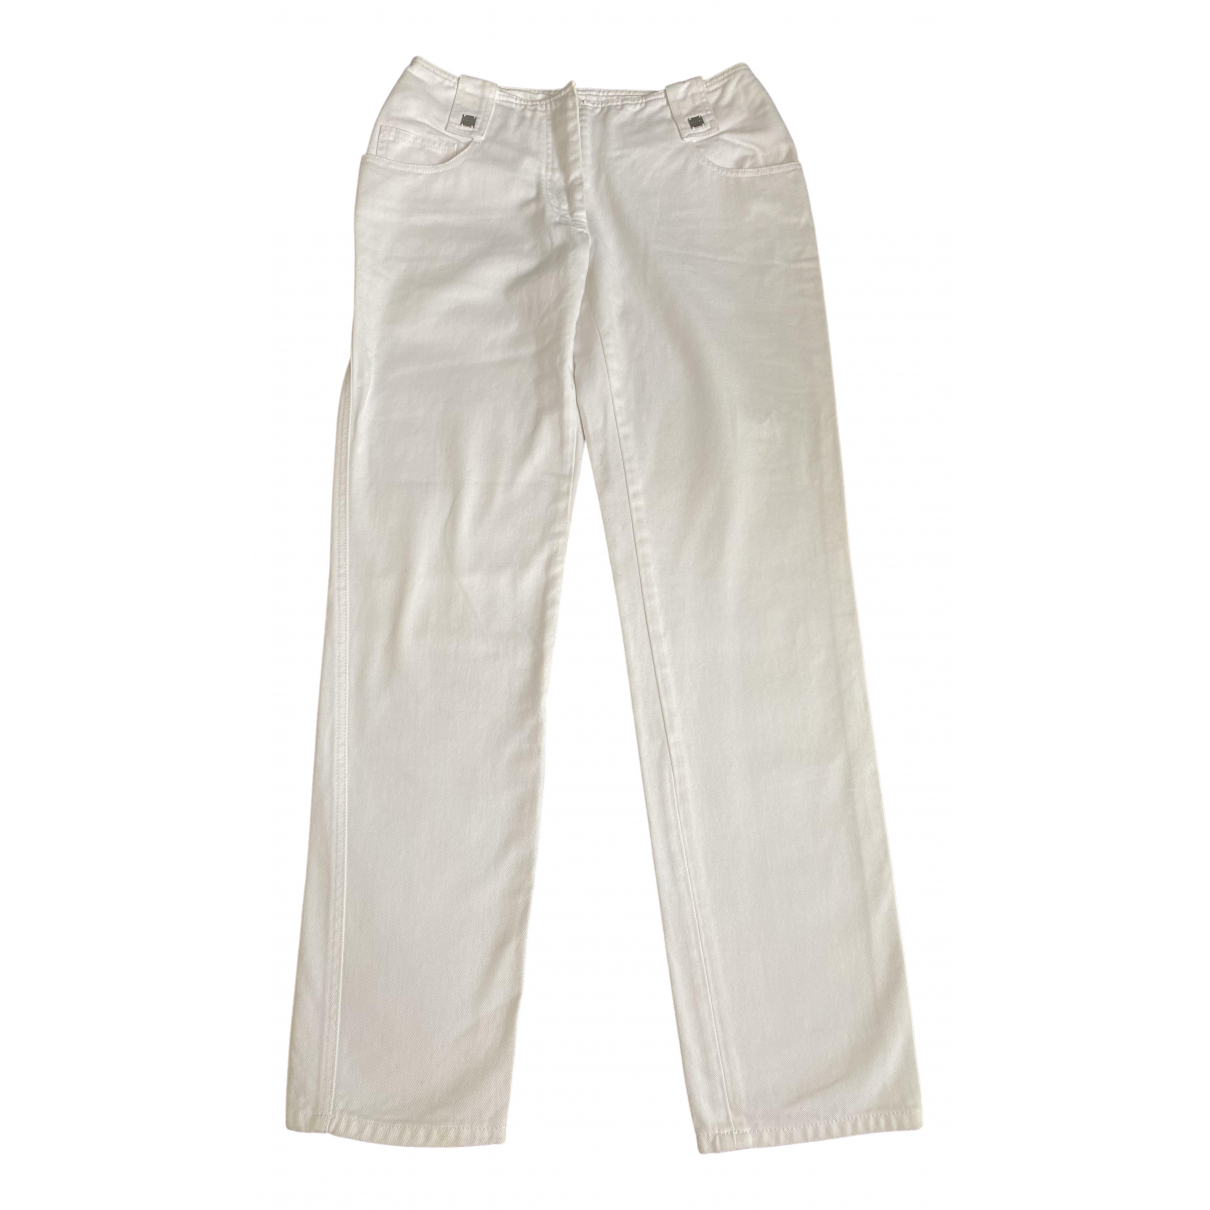 Chanel \N White Cotton Jeans for Women 40 FR